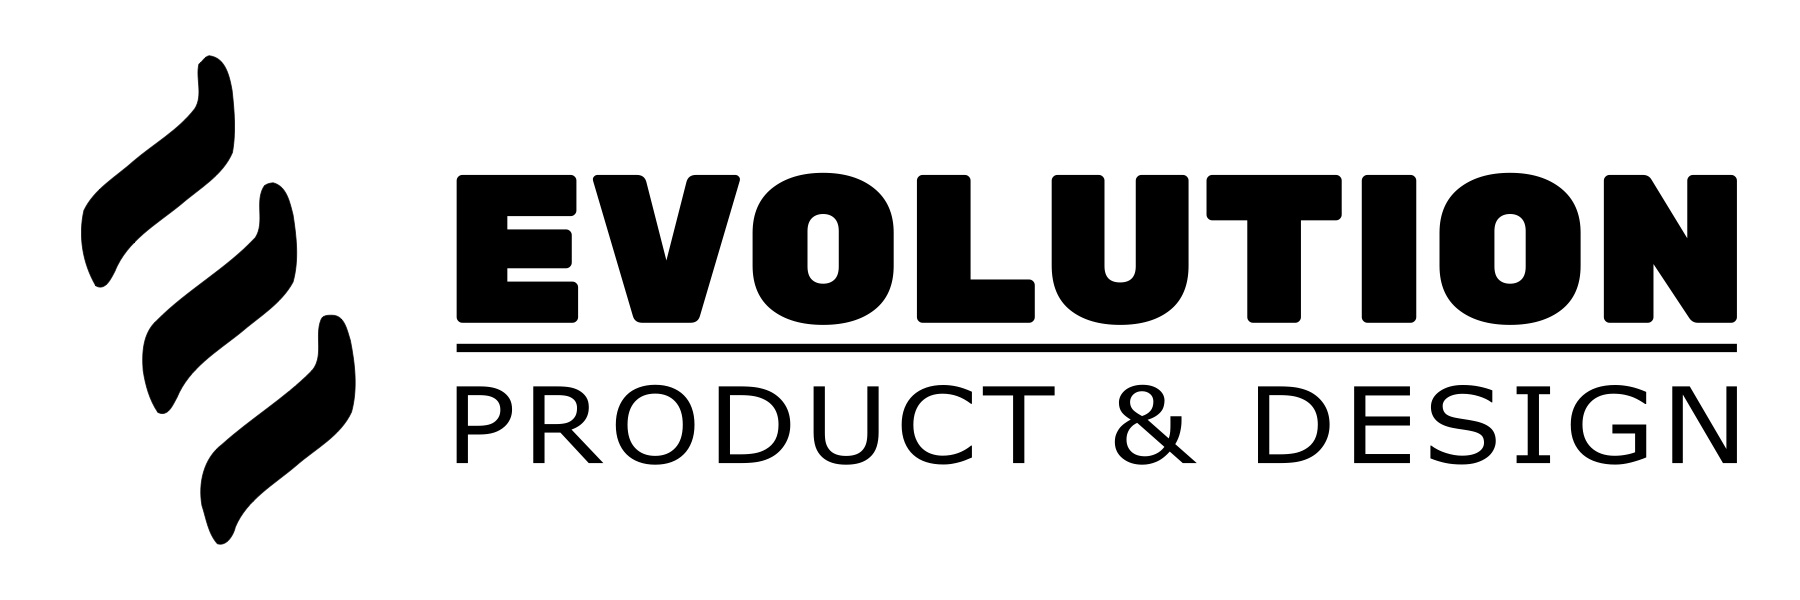 Evolution Product and Design Logo